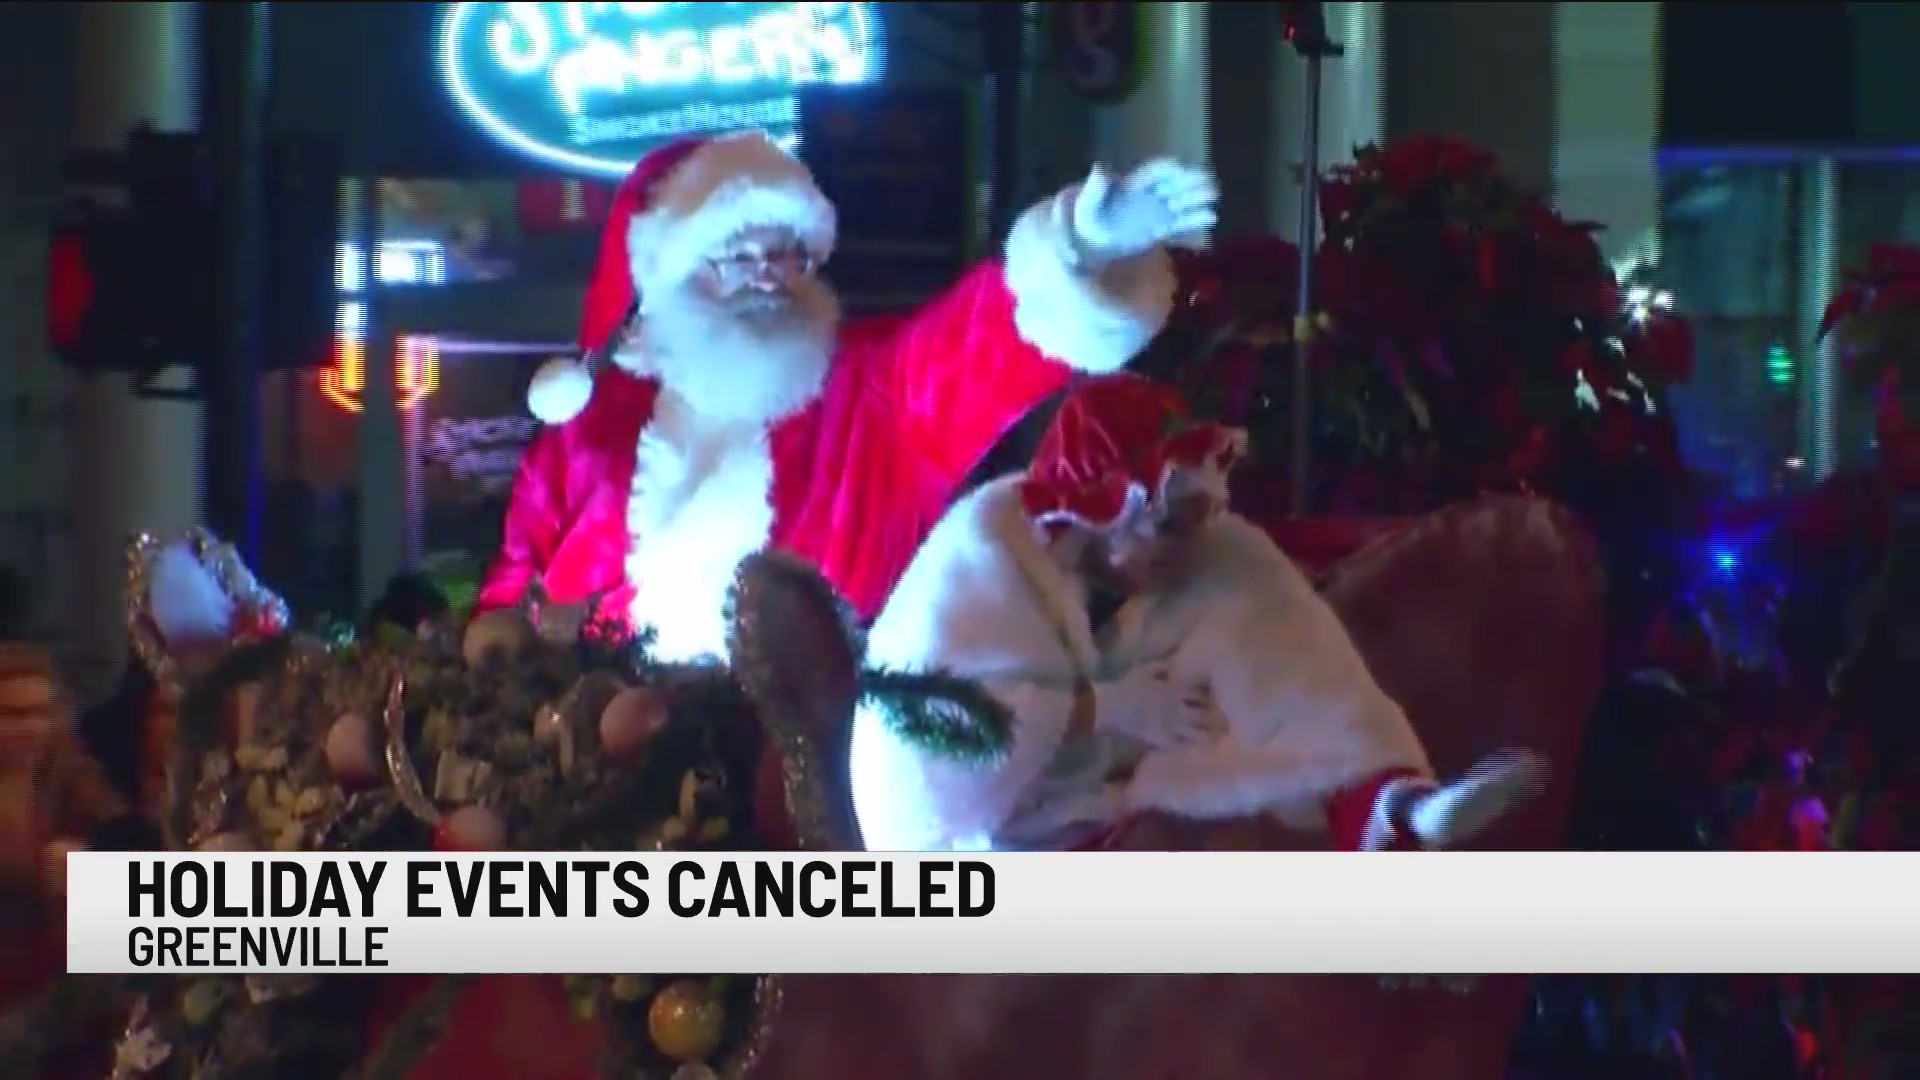 Christmas Events Greenville Sc 2020 Christmas parade canceled ; Greenville business braces for impact